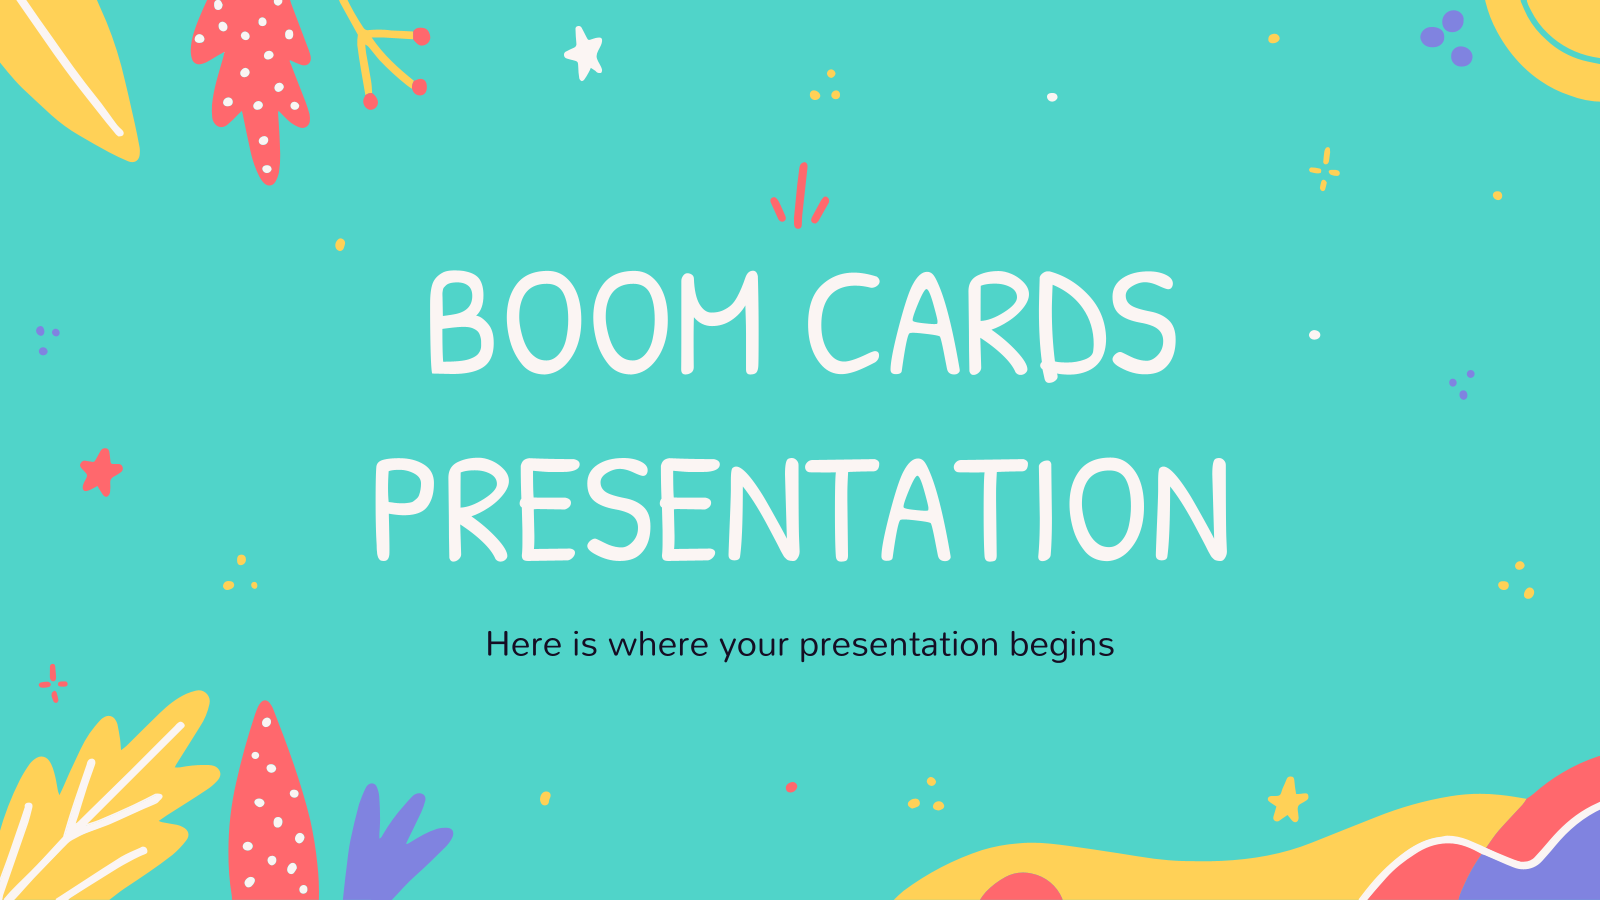 Boom Cards presentation template